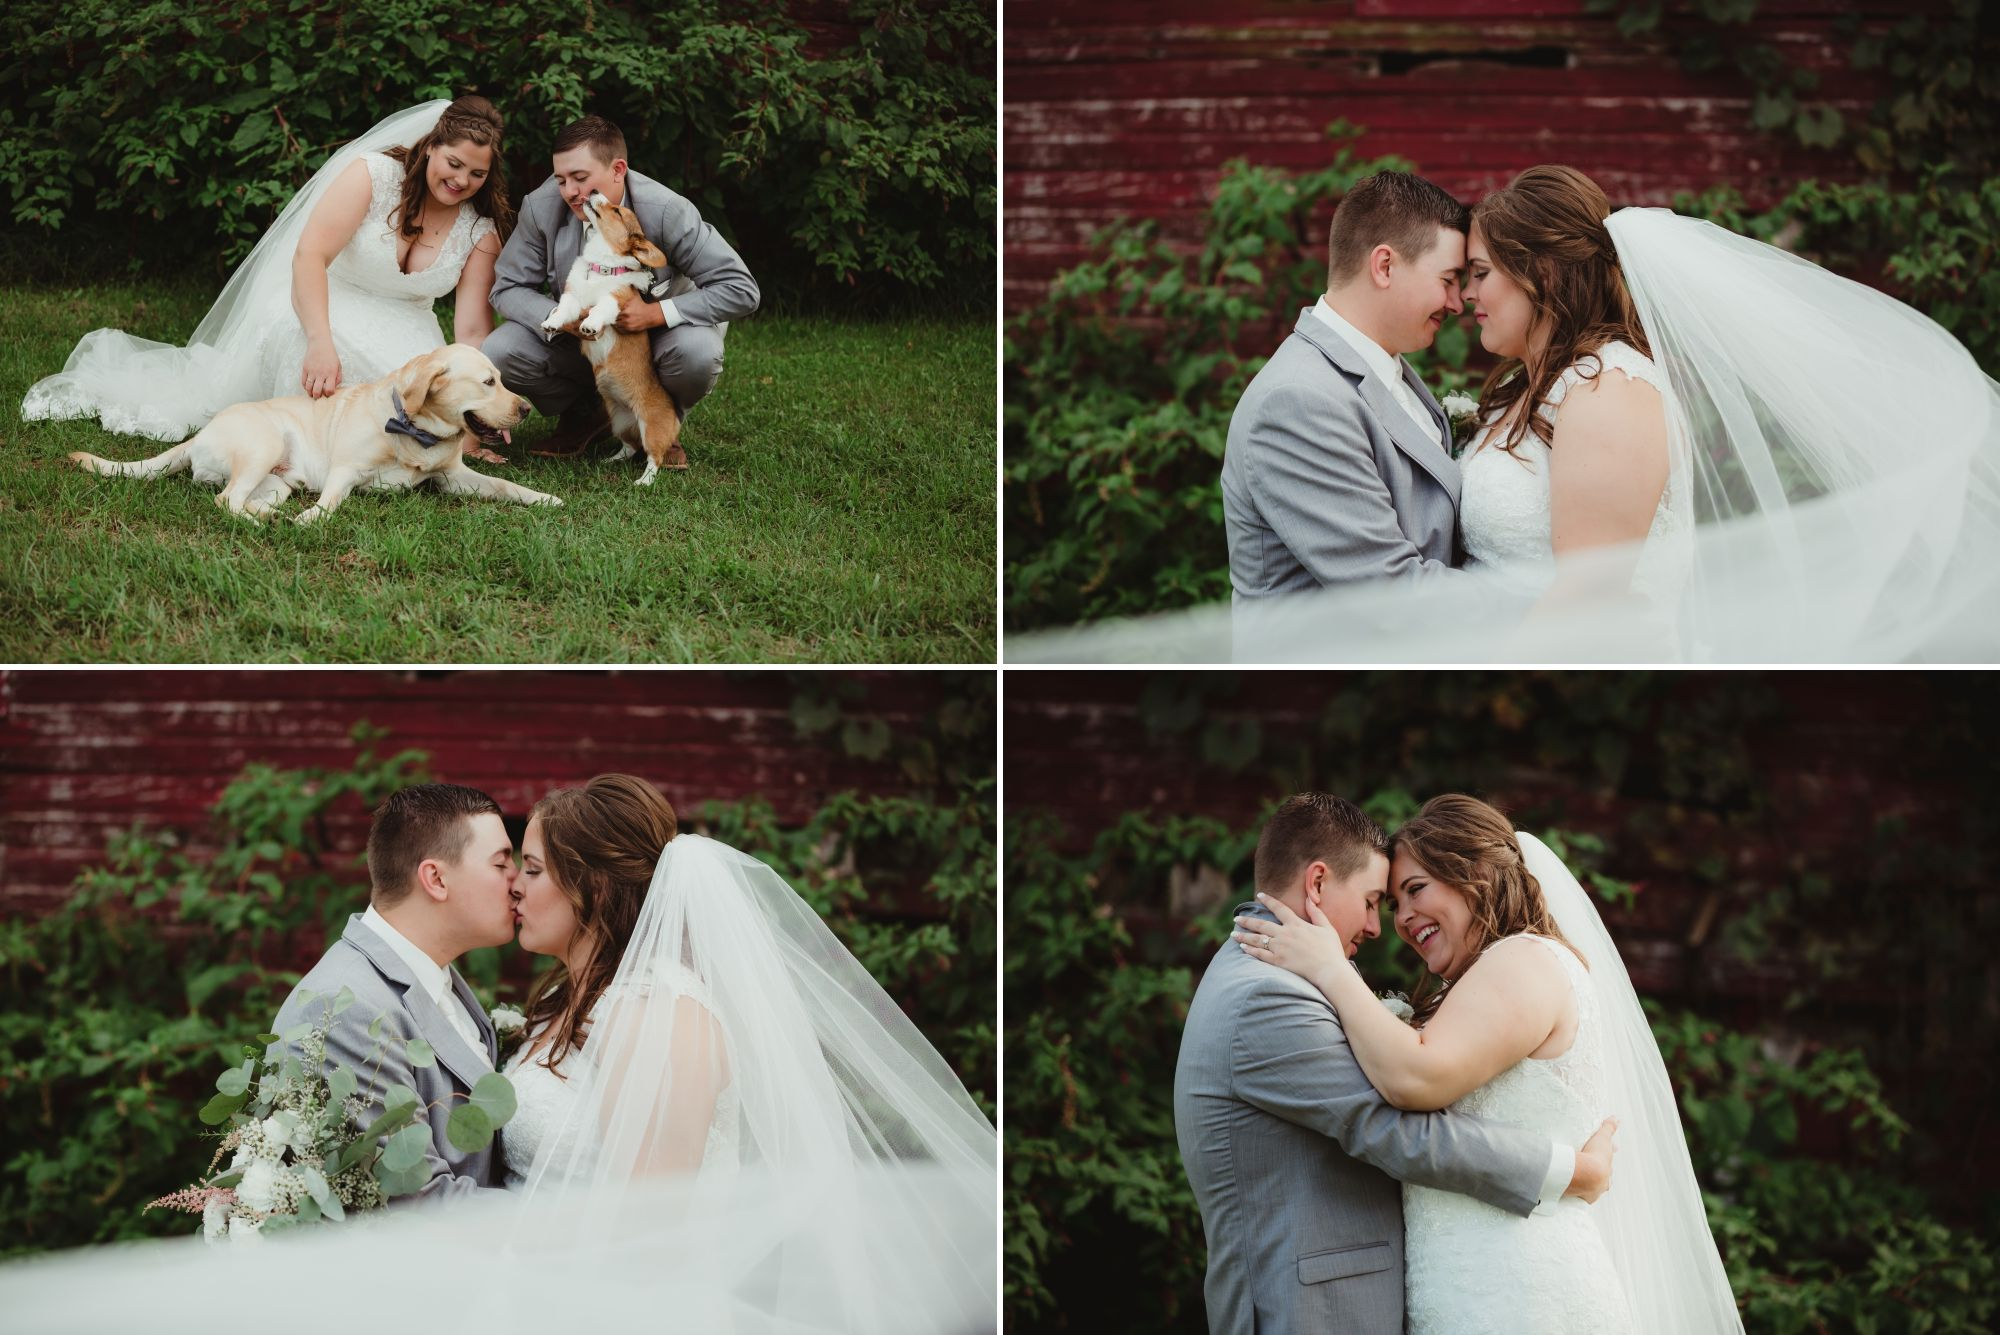 Collage of the bride and groom posing in front of the barn. Their dogs included in one.